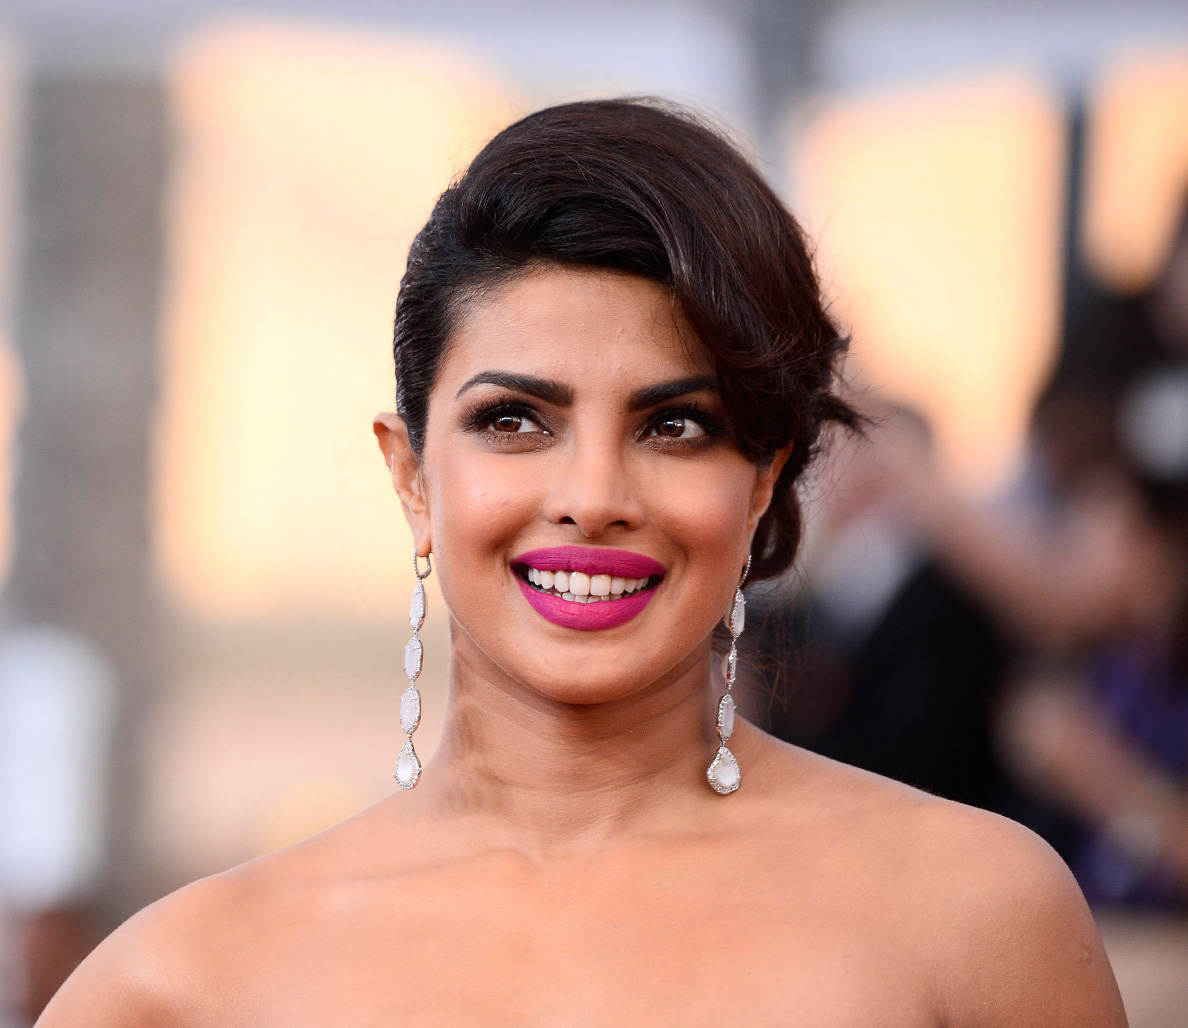 agent exotica: how priyanka chopra is taking over hollywood